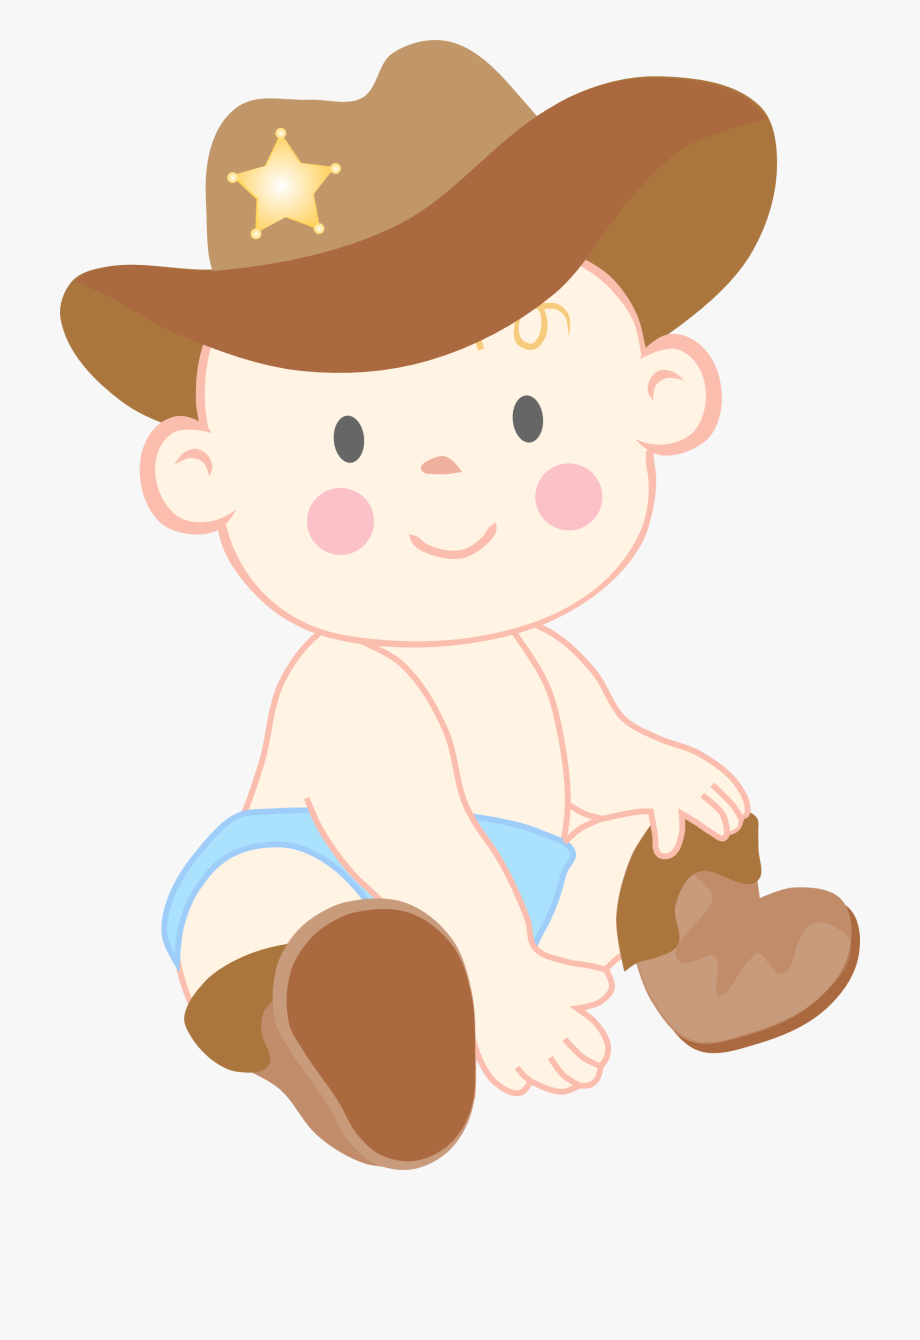 Cowboy clipart png clip art black and white download Baby Cowboy Boots Clipart - Baby Cowboy Clipart #73090 - Free ... clip art black and white download